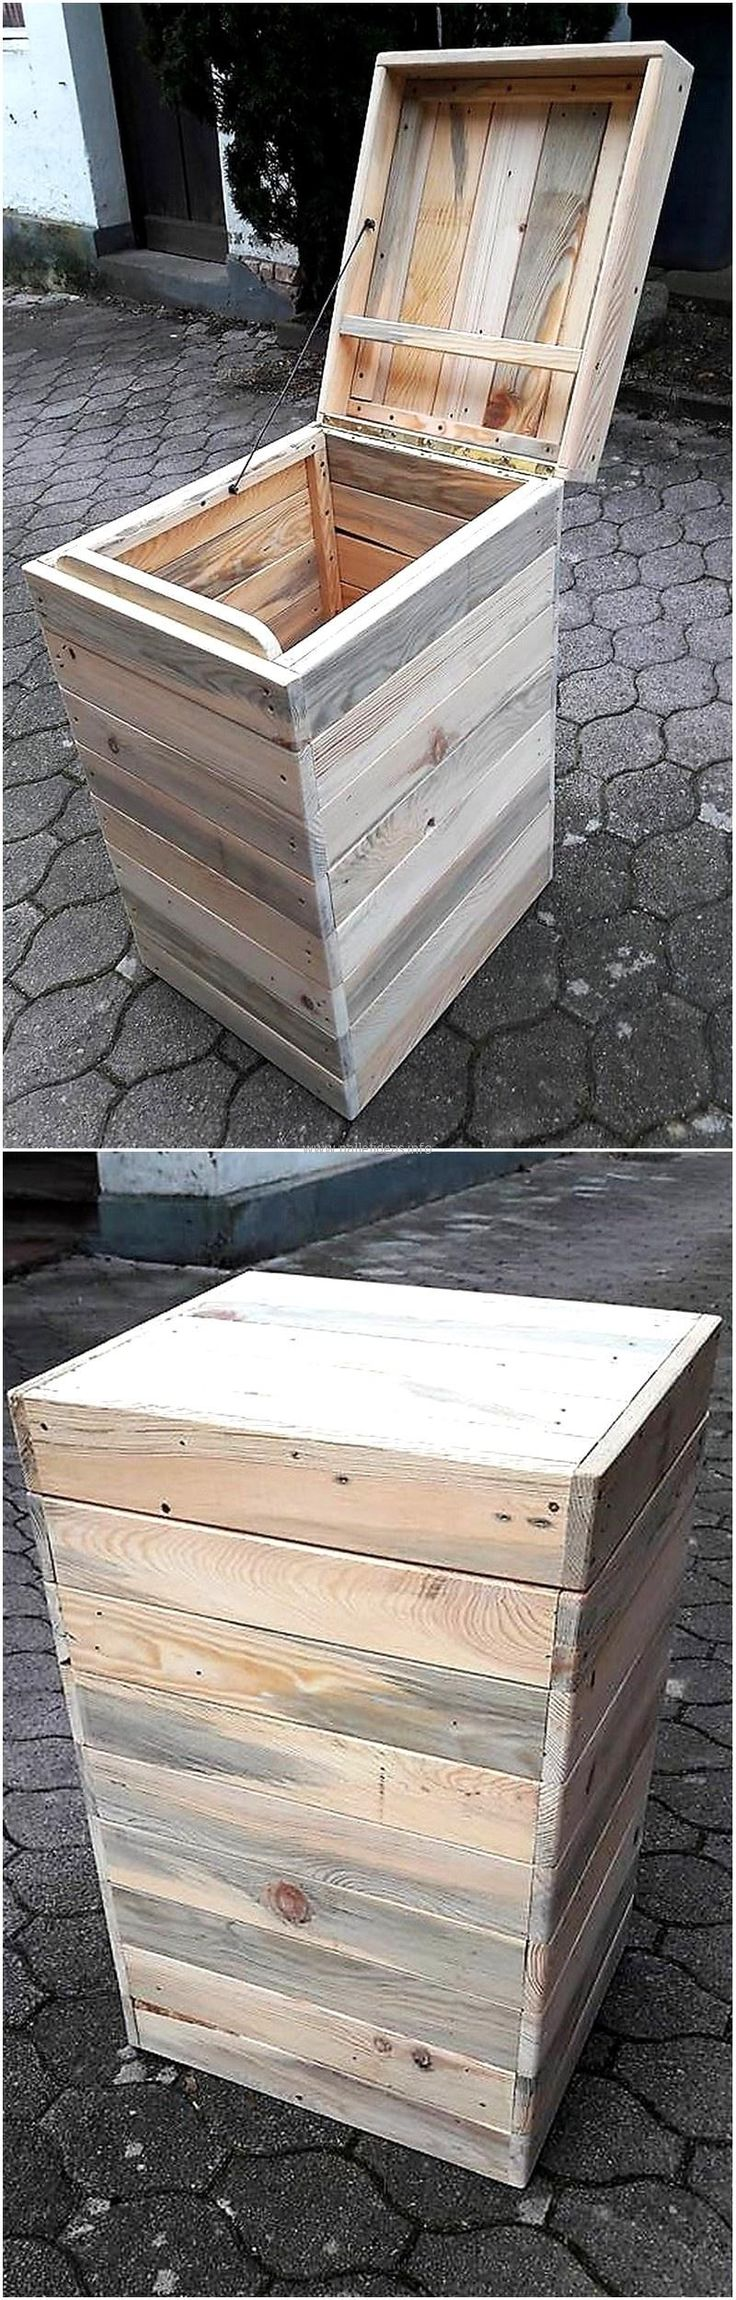 It is better to make something to store the items, which don't occupy much space and here is an idea of creating a long trunk. As many trunks can be created as required according to the items that need to be stored, the trunk made up of pallets is strong and can keep the items safe.